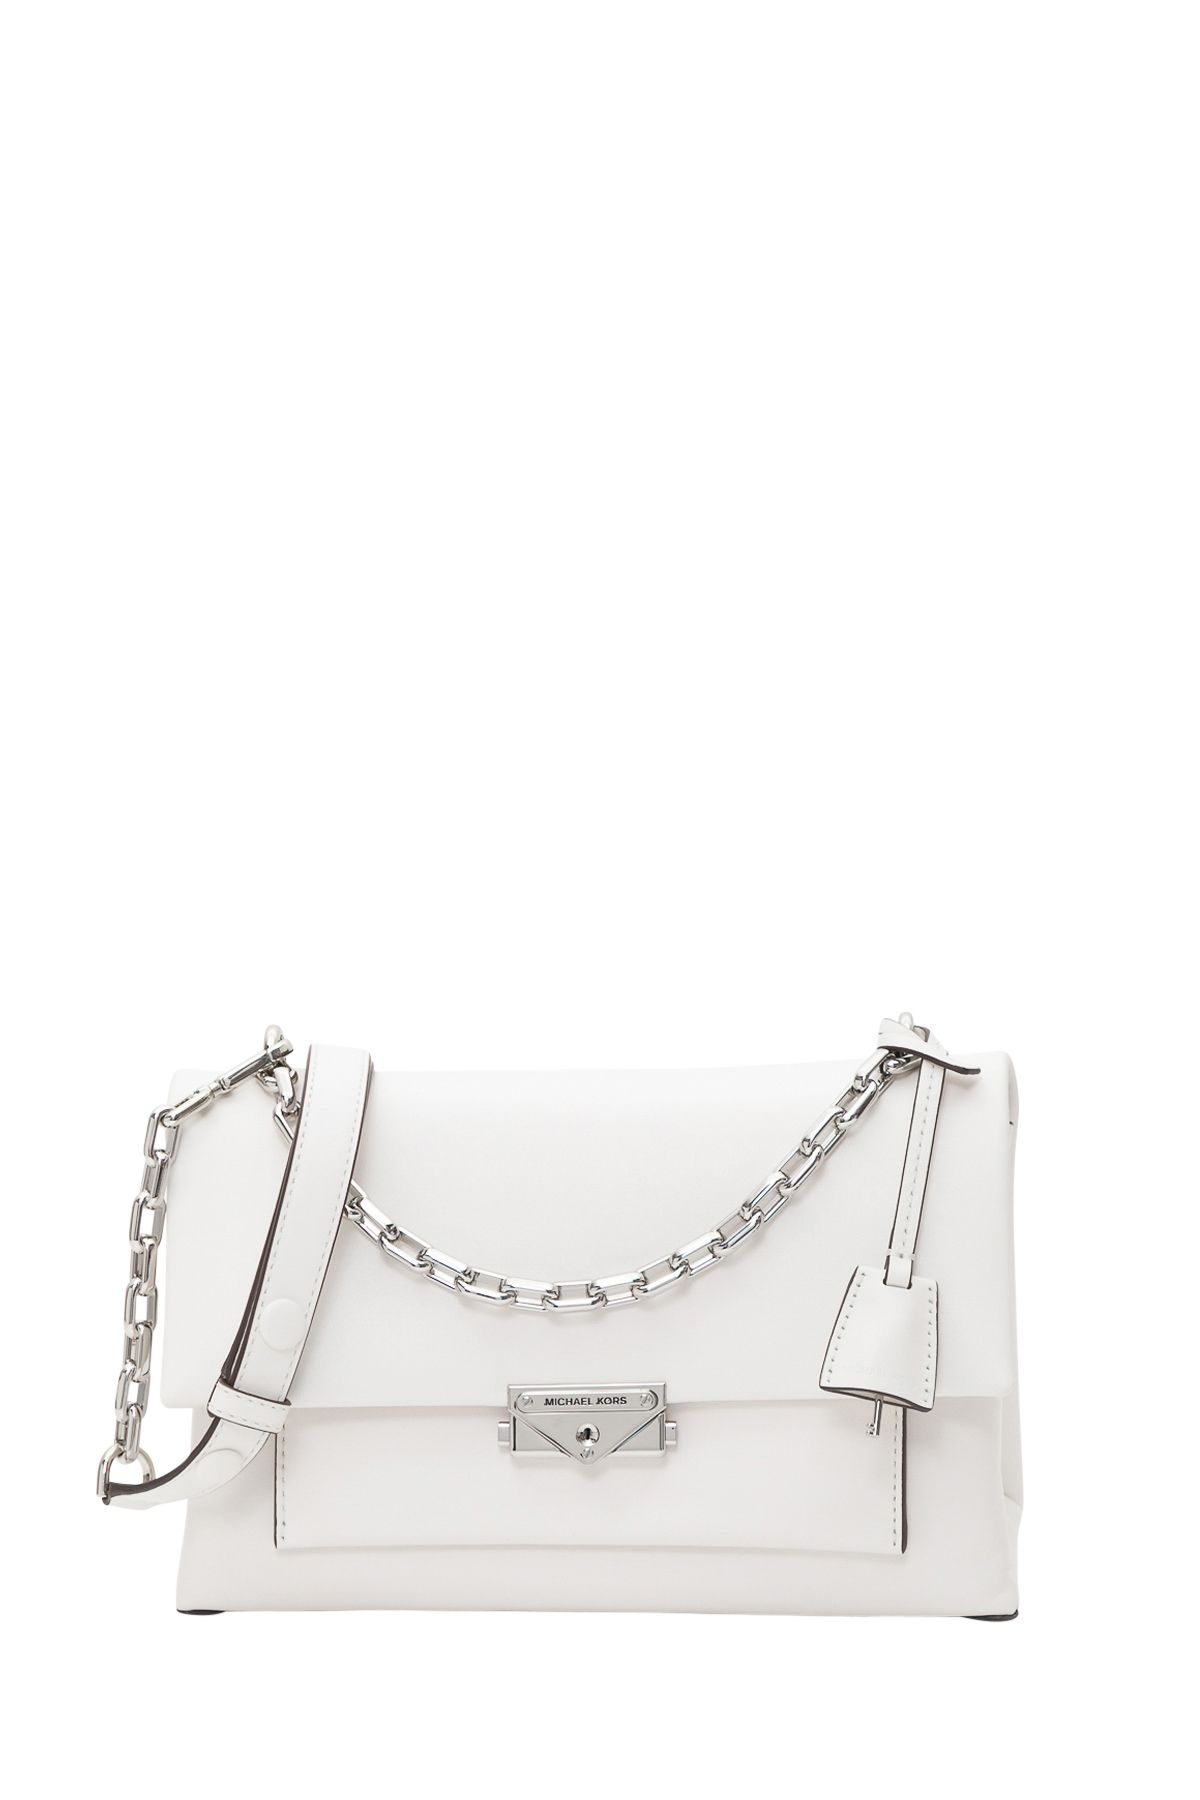 862a2d8f04fc21 MICHAEL Michael Kors Cece Large Leather Shoulder Bag - White ...